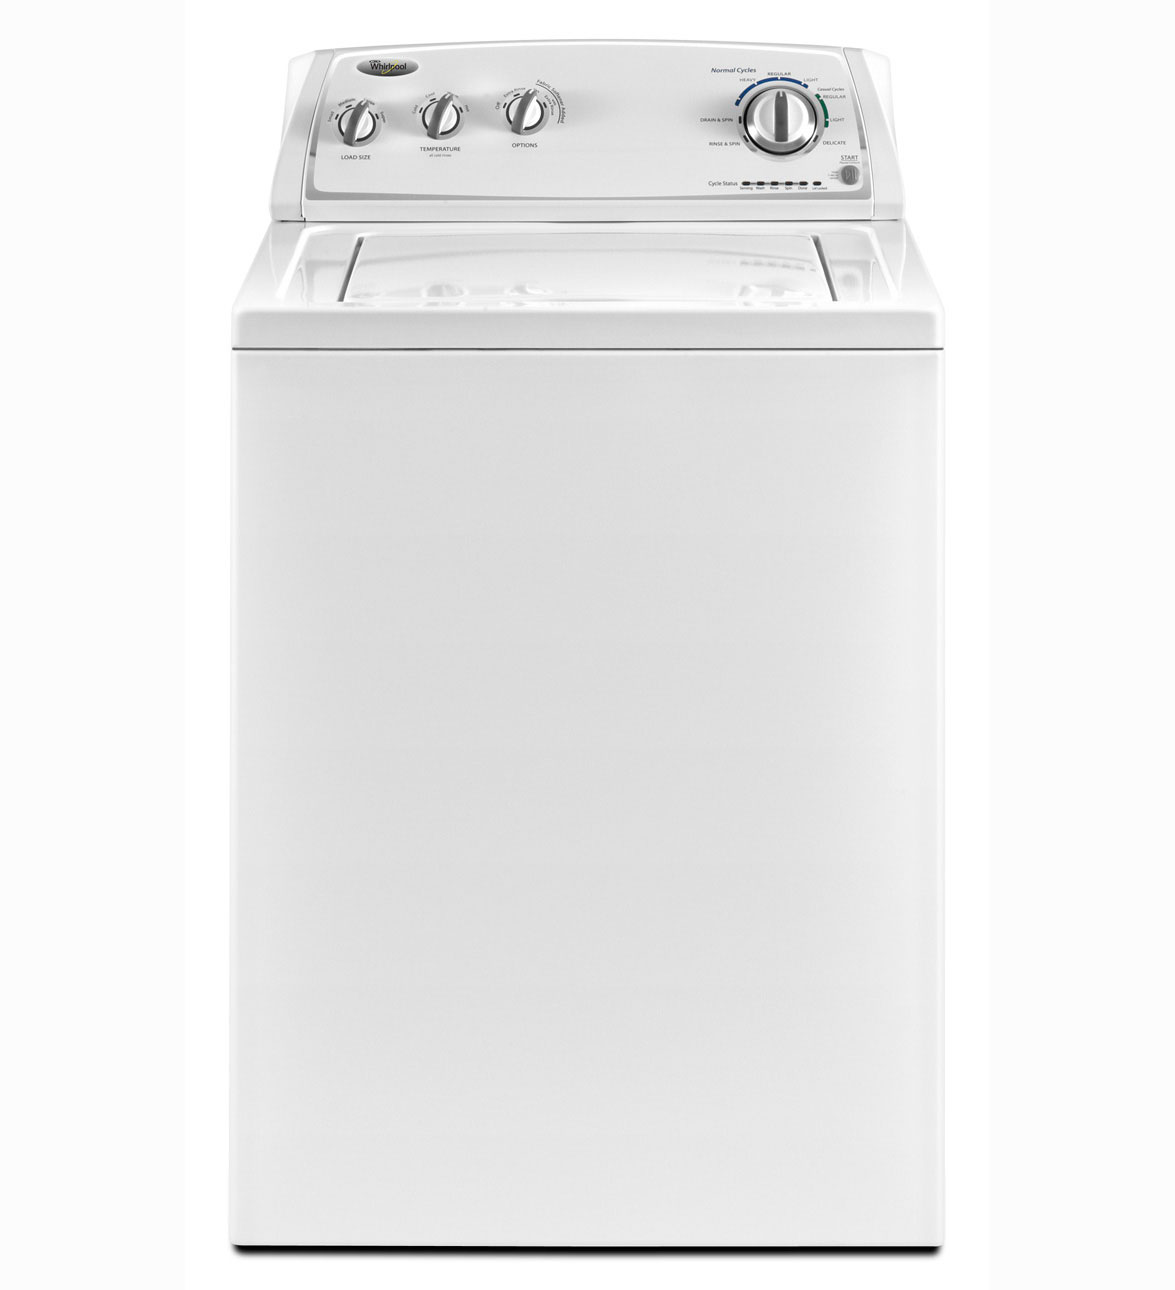 Review of Whirlpool 3.4 cu ft Top-Load Washer (White) (Model ...